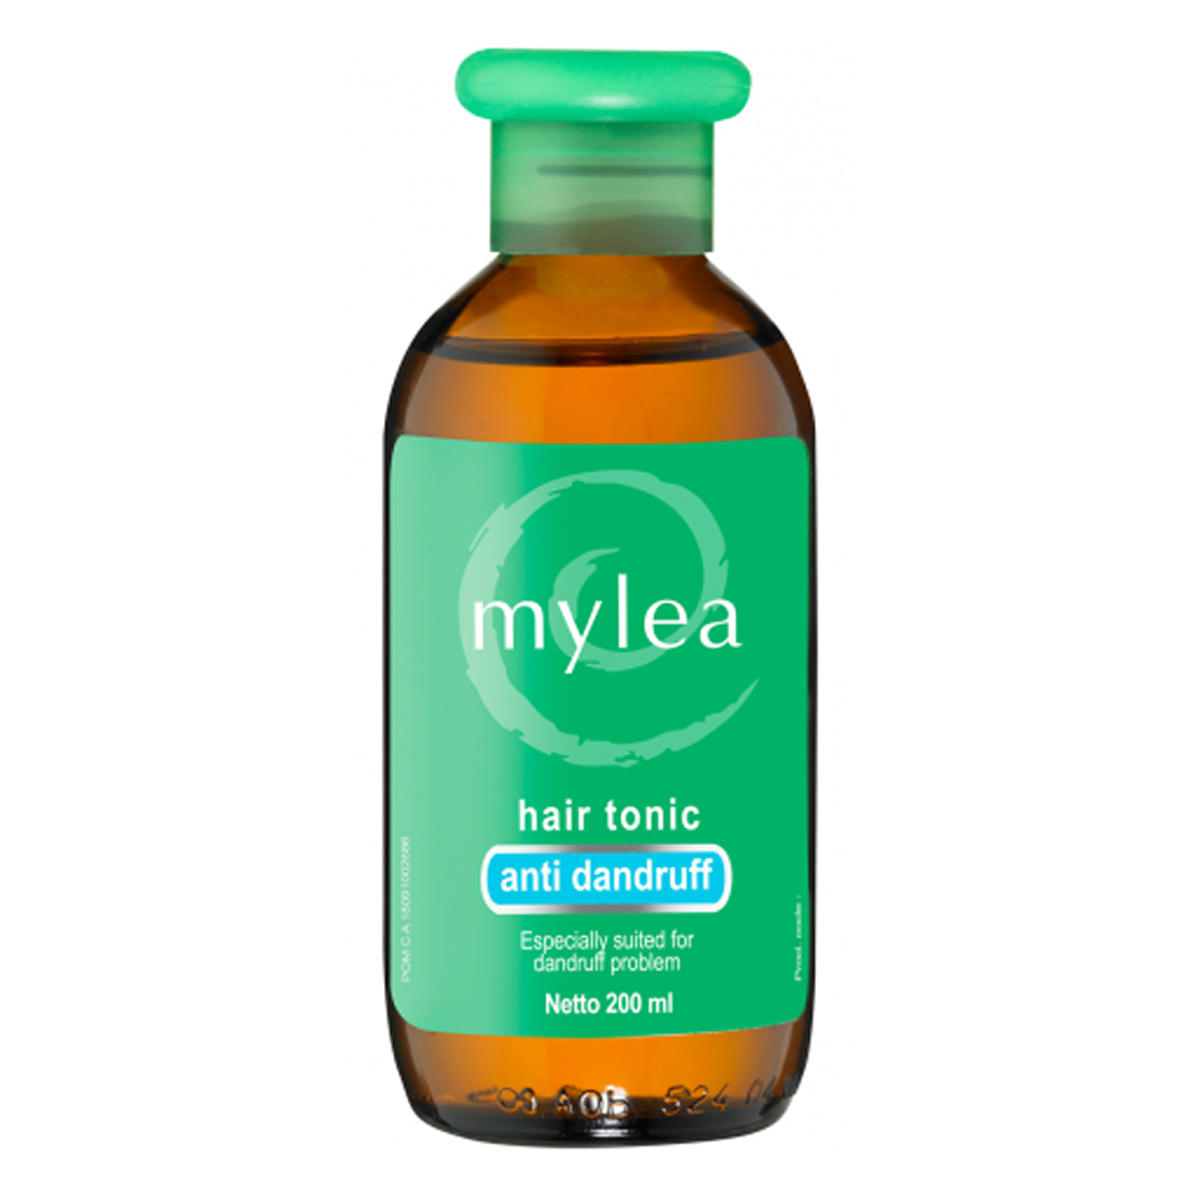 Mylea---Hair-Tonic-Anti-Dandruff-(200-ml)-sfw(1)